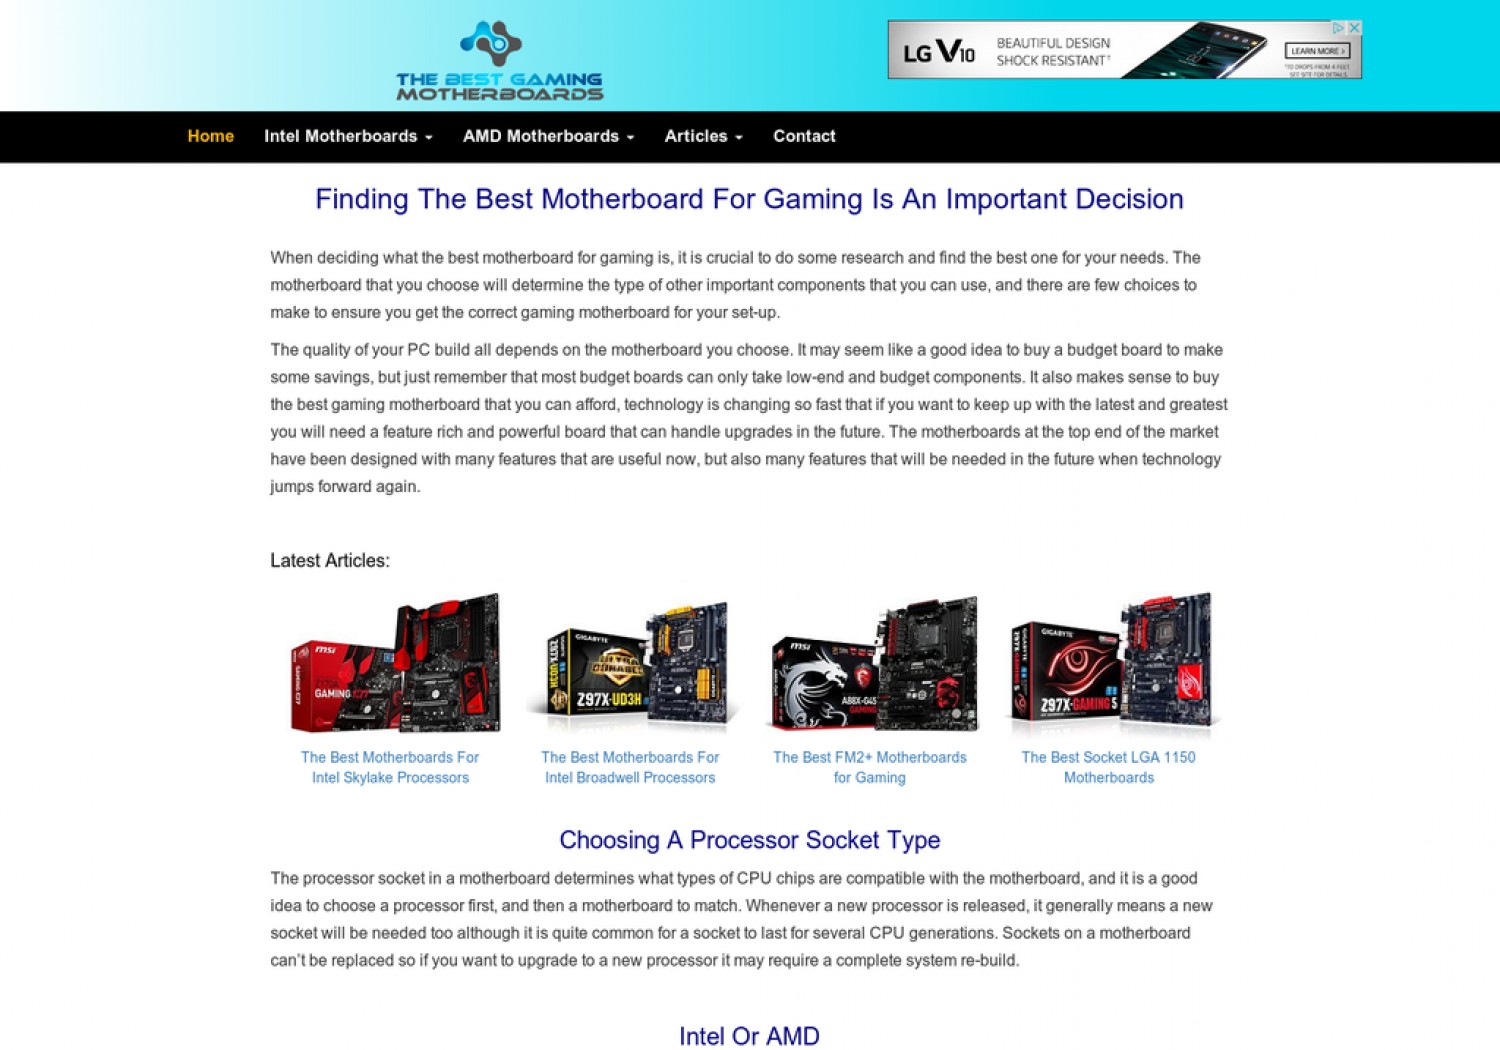 The Best Gaming Motherboards Infographic